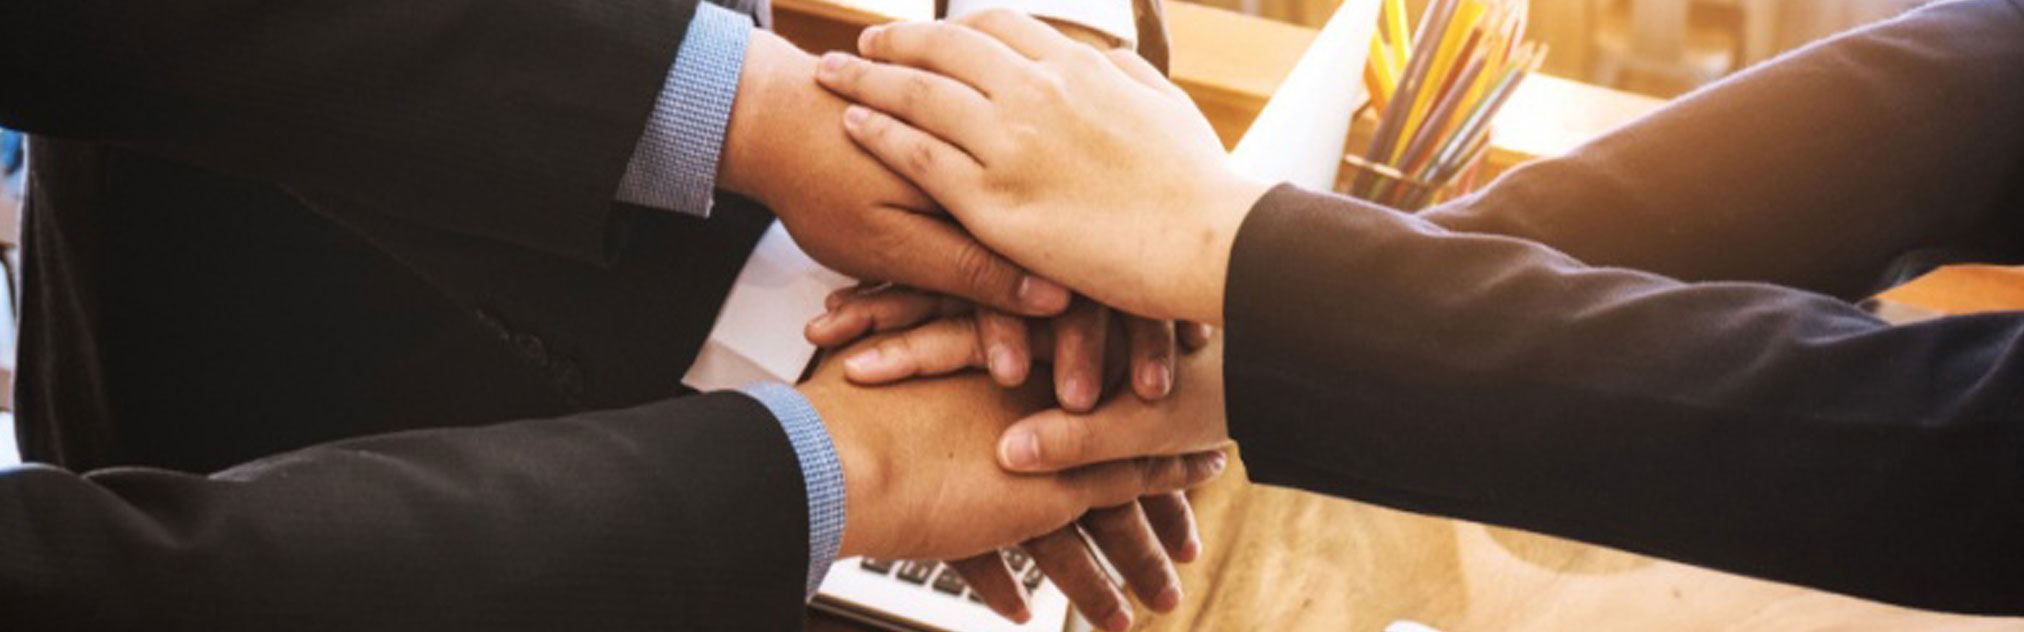 People in business suits join hands